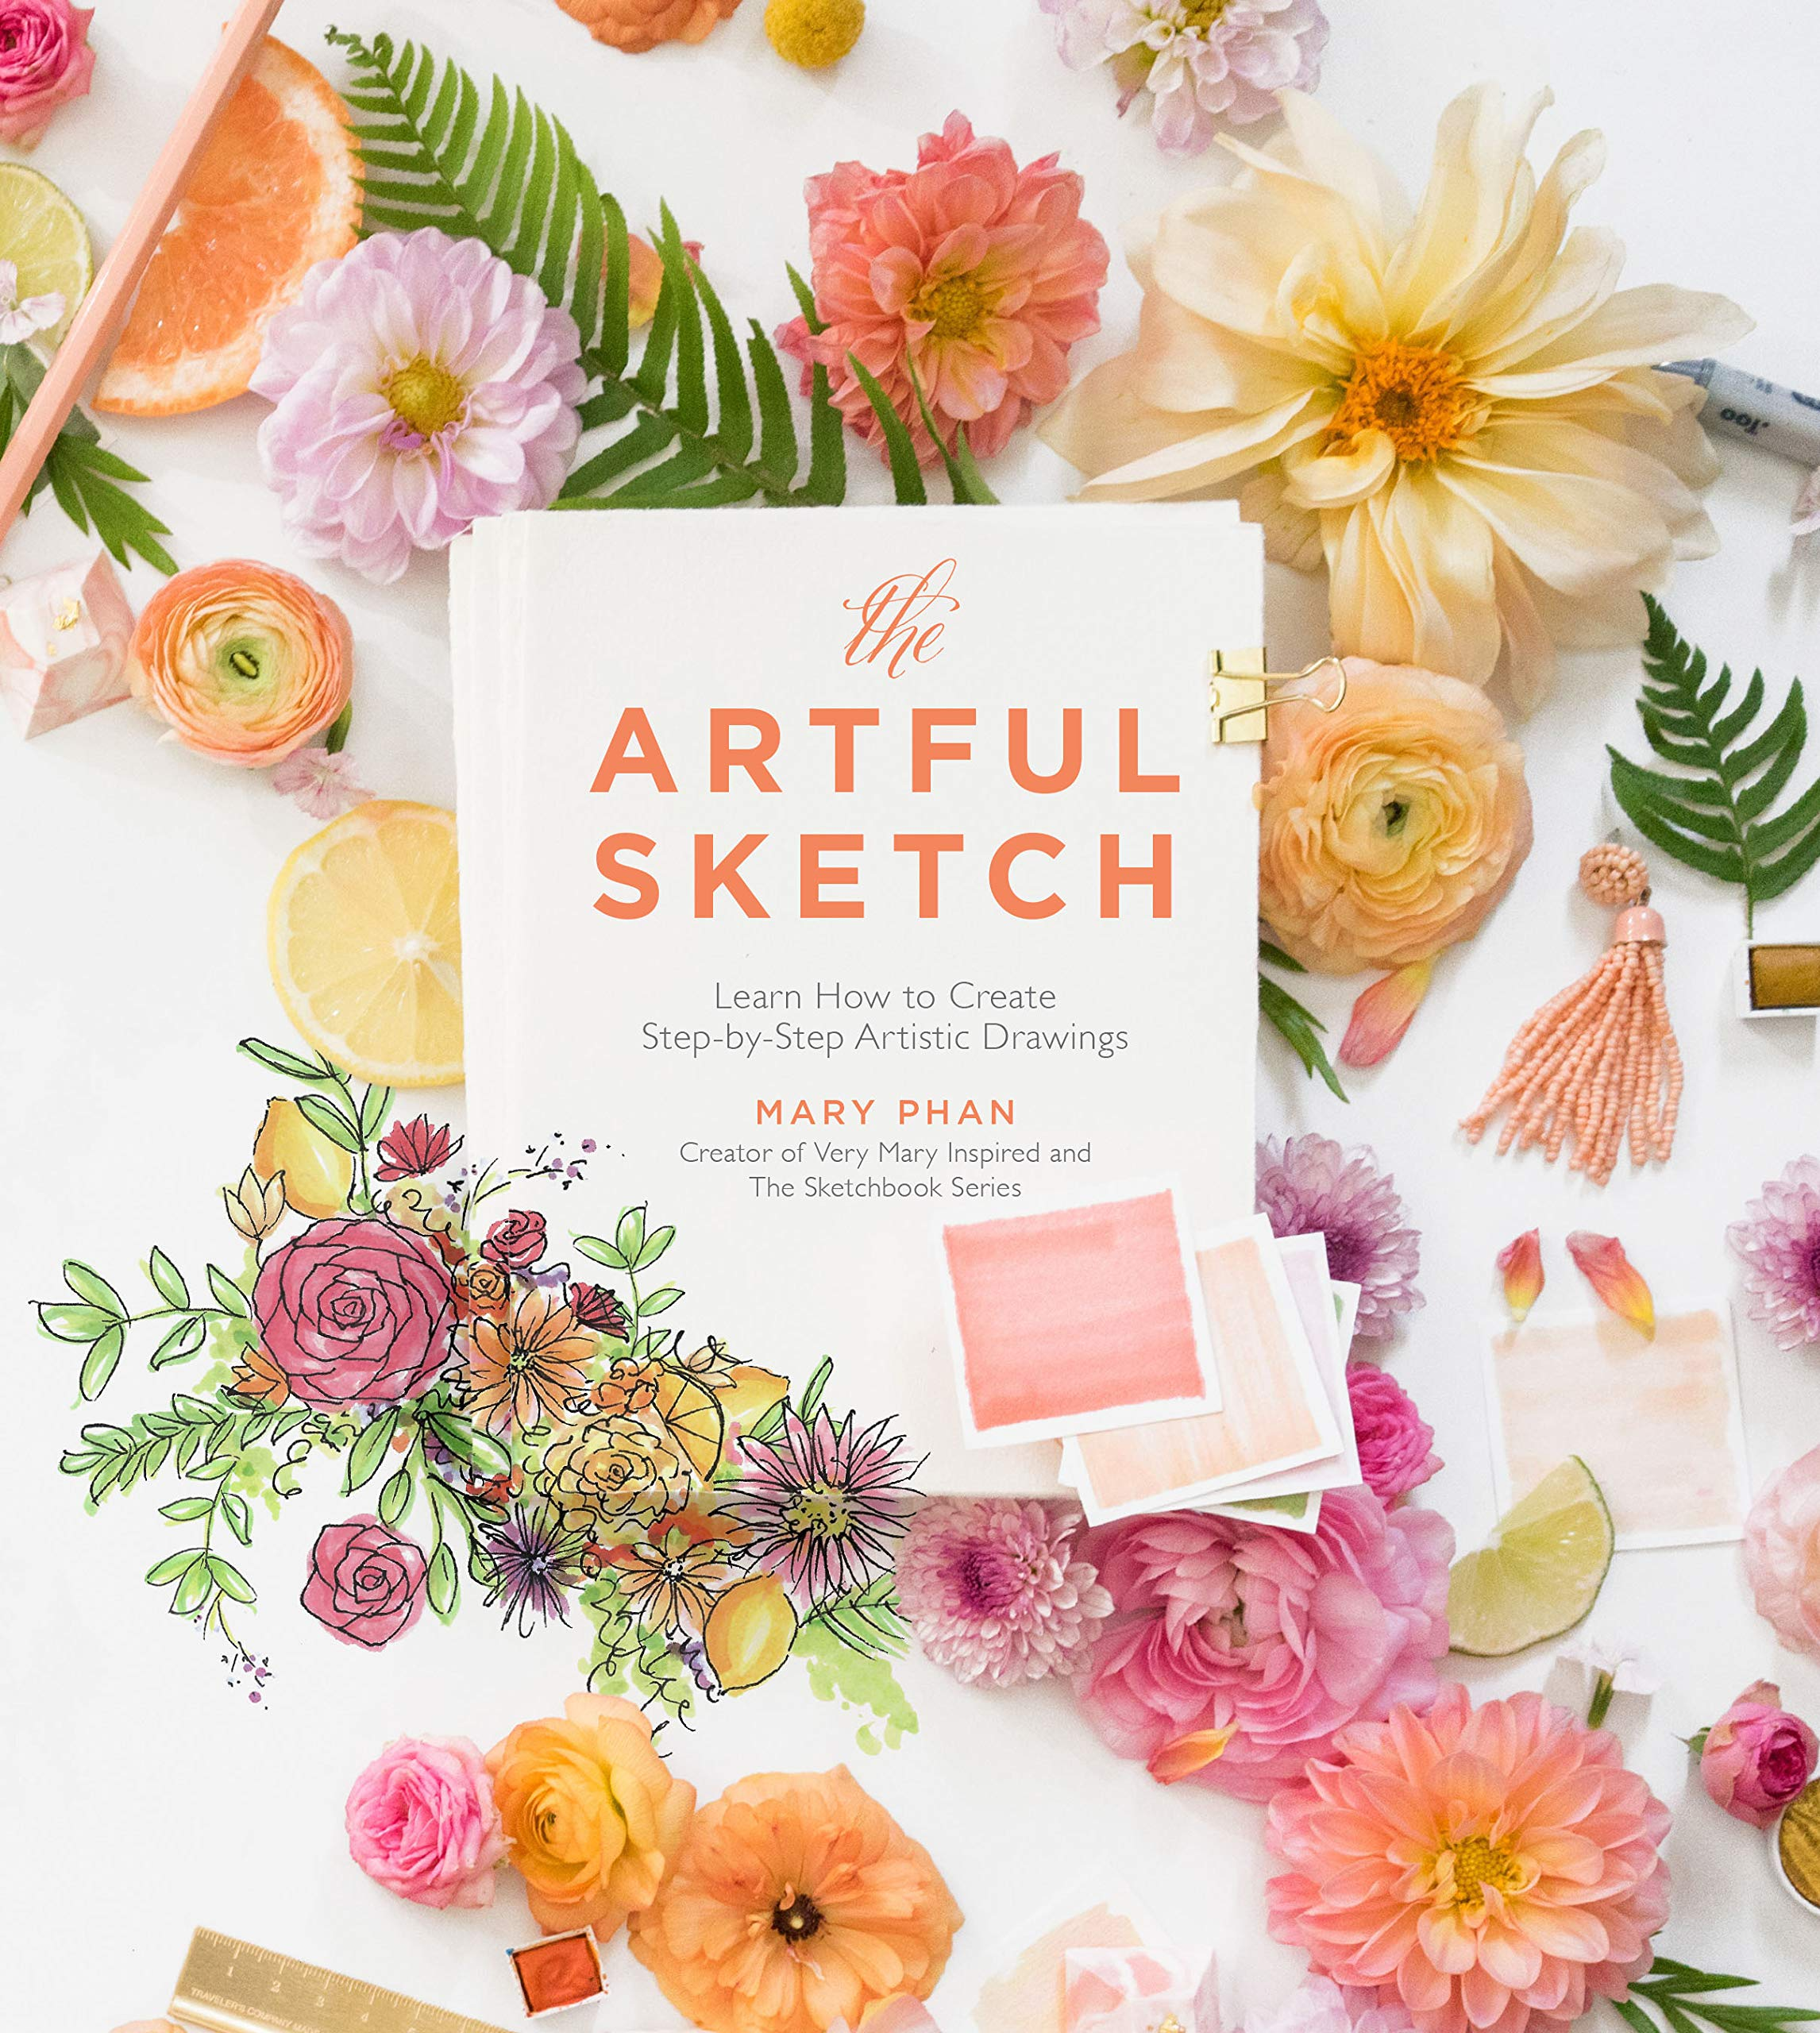 The artful sketch learn how to create step by step artistic the artful sketch learn how to create step by step artistic drawings mary phan 9781624146077 amazon books izmirmasajfo